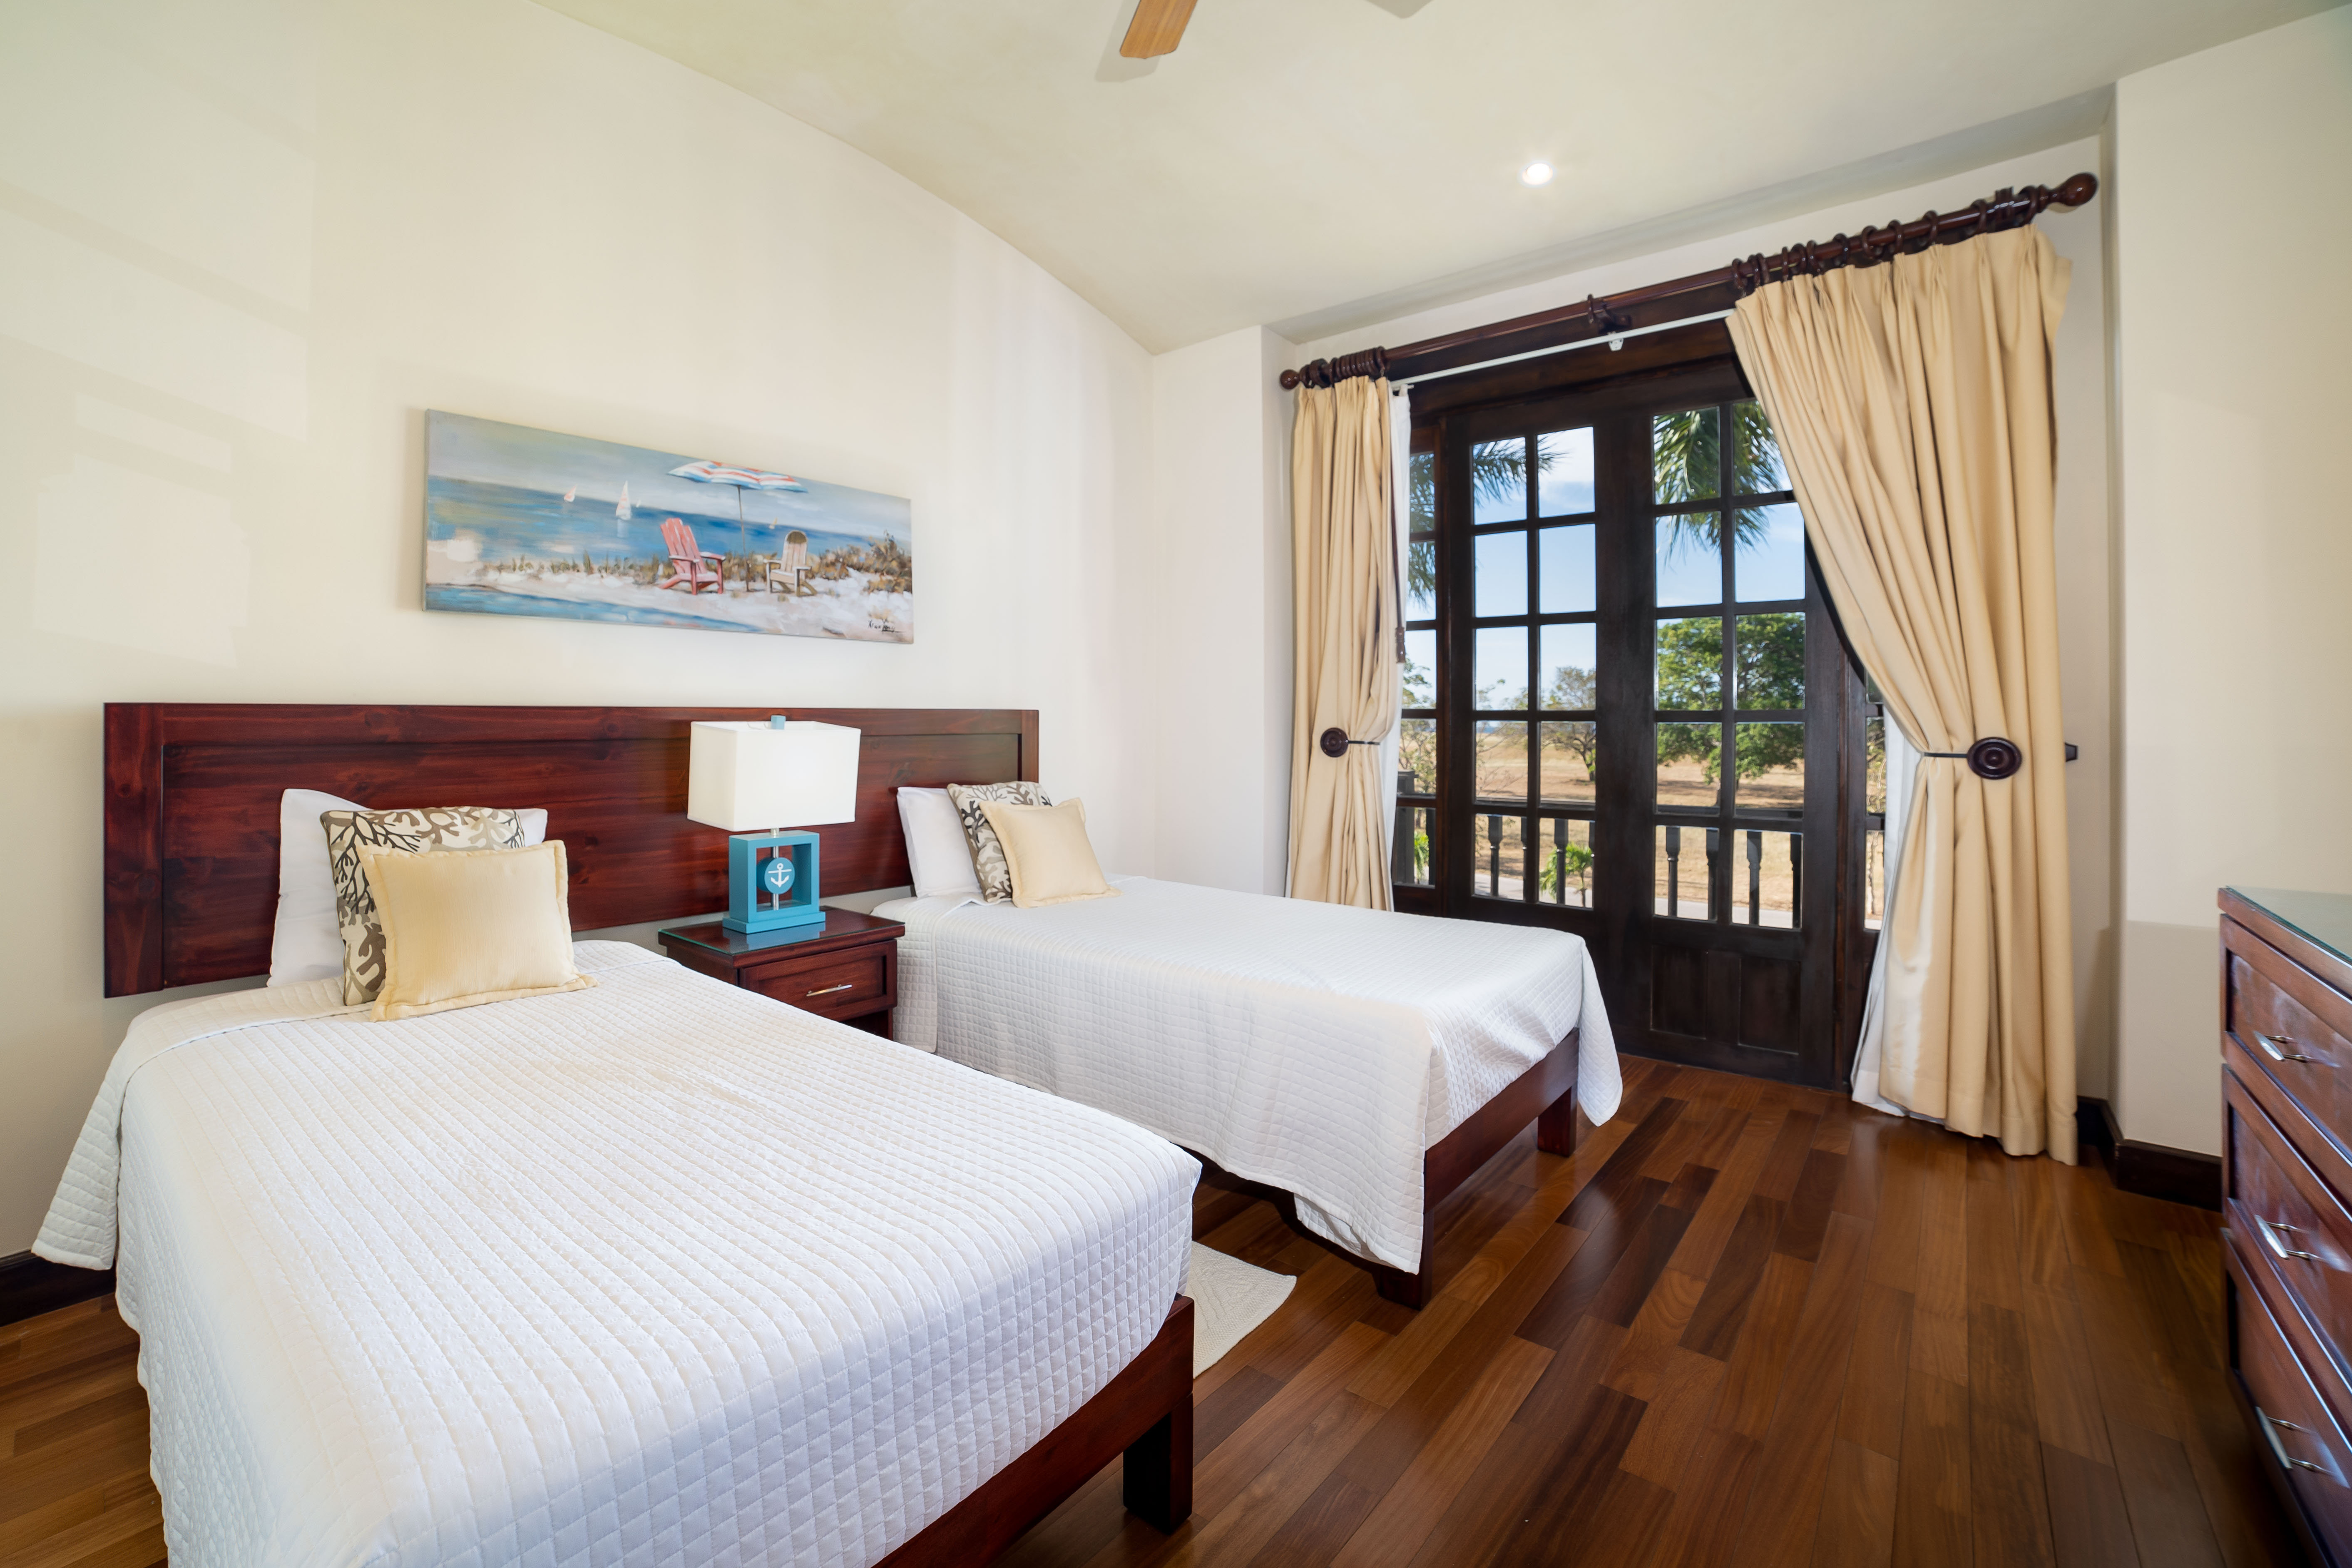 Luxury twin beds with a balcony view